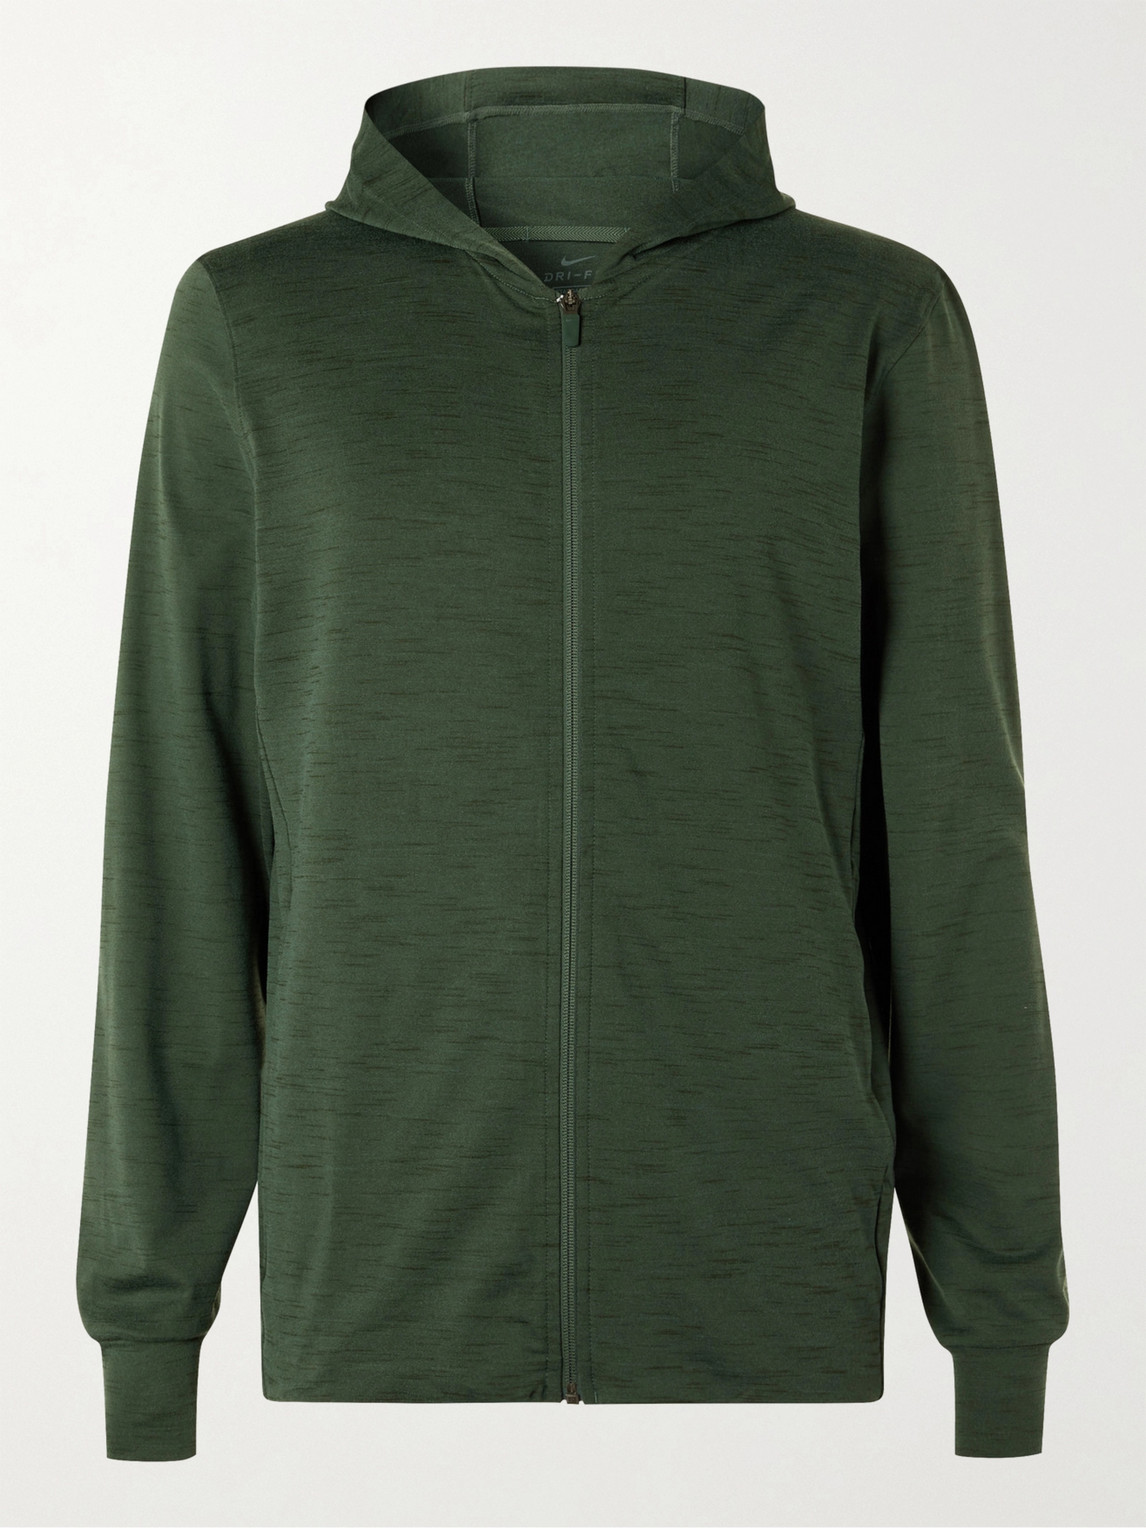 Nike Mélange Dri-fit Jersey Zip-up Yoga Hoodie In Galactic Jade,sequoia